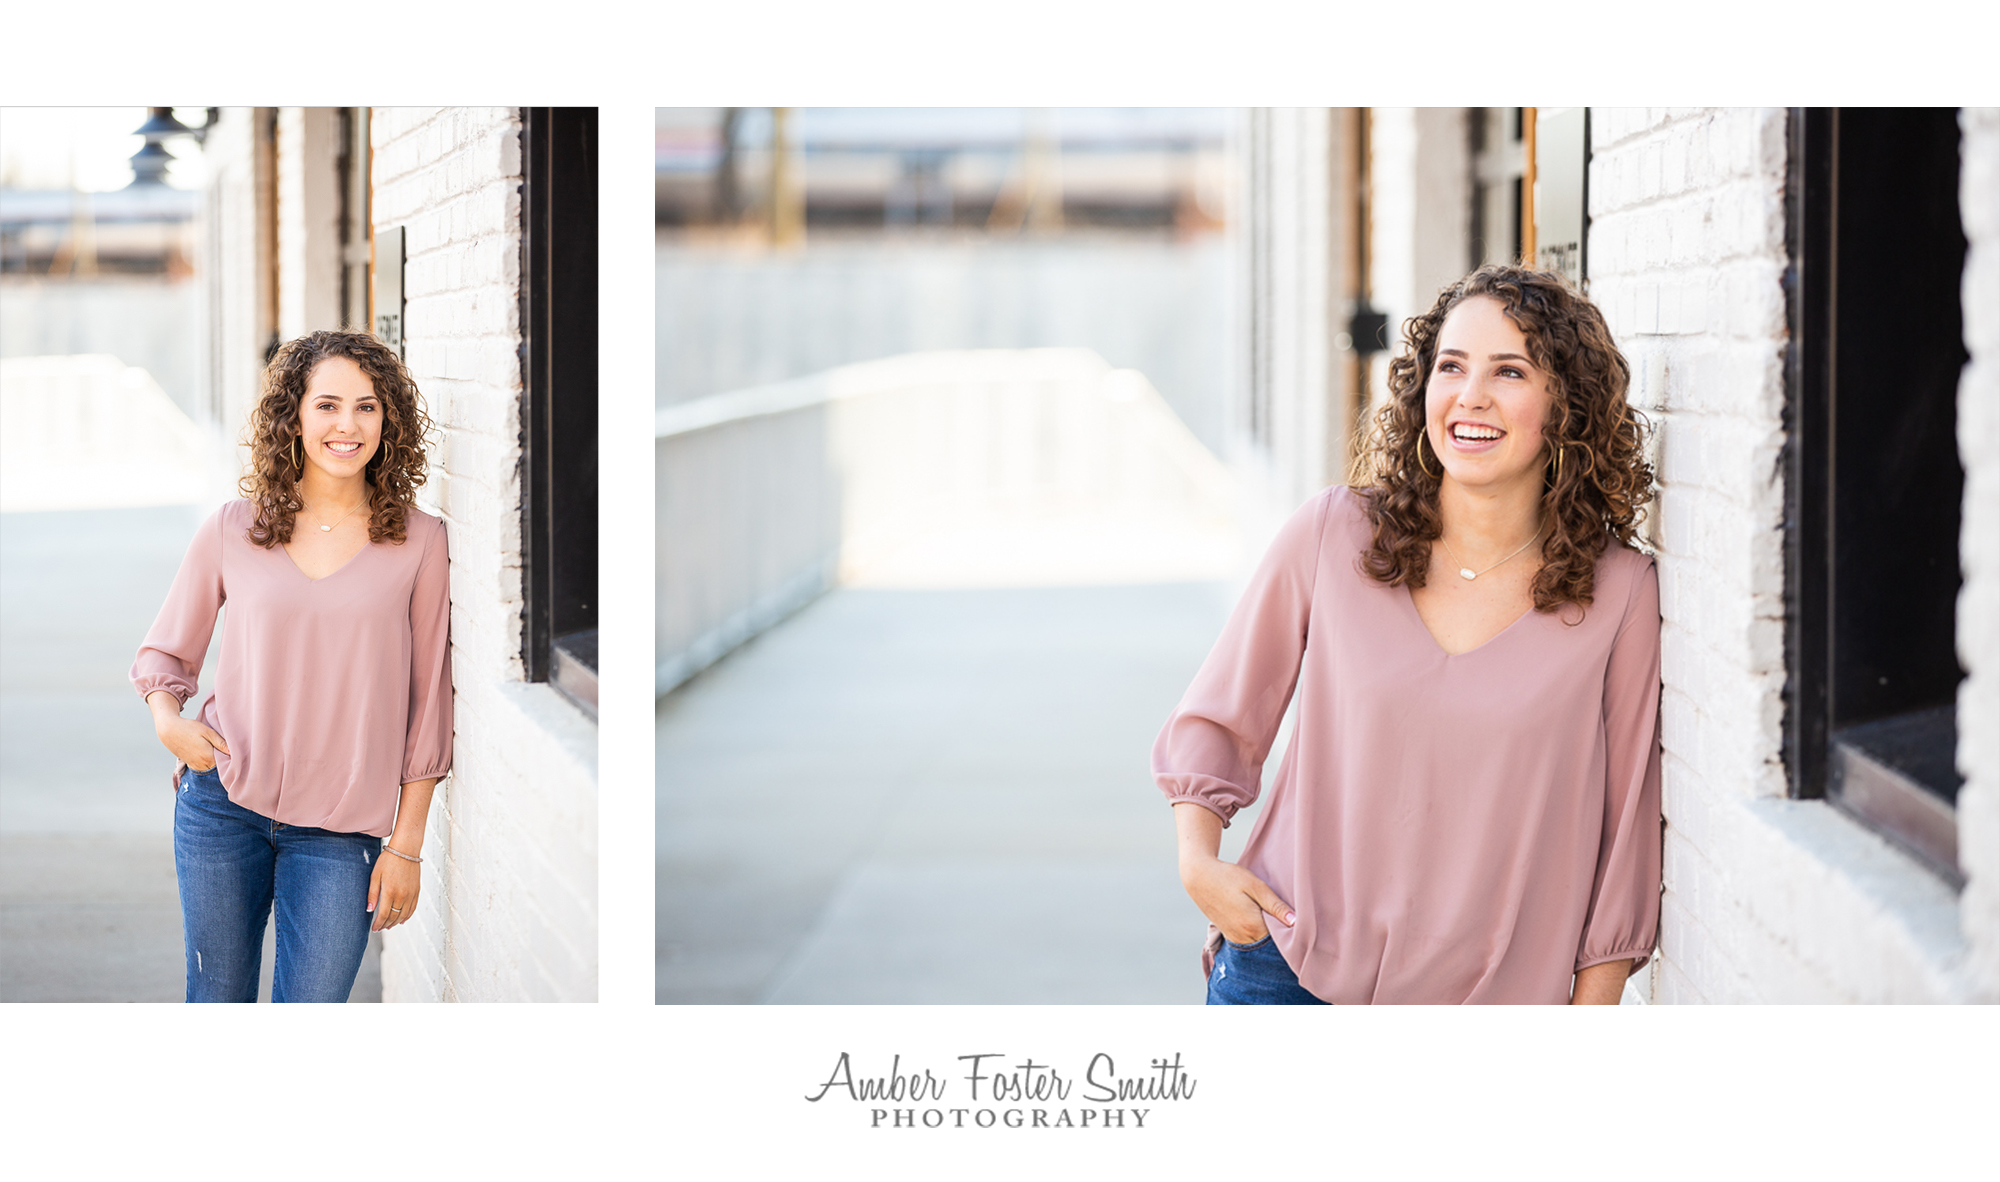 Amber Foster Smith Photography - Holly Springs High School Senior Photographer